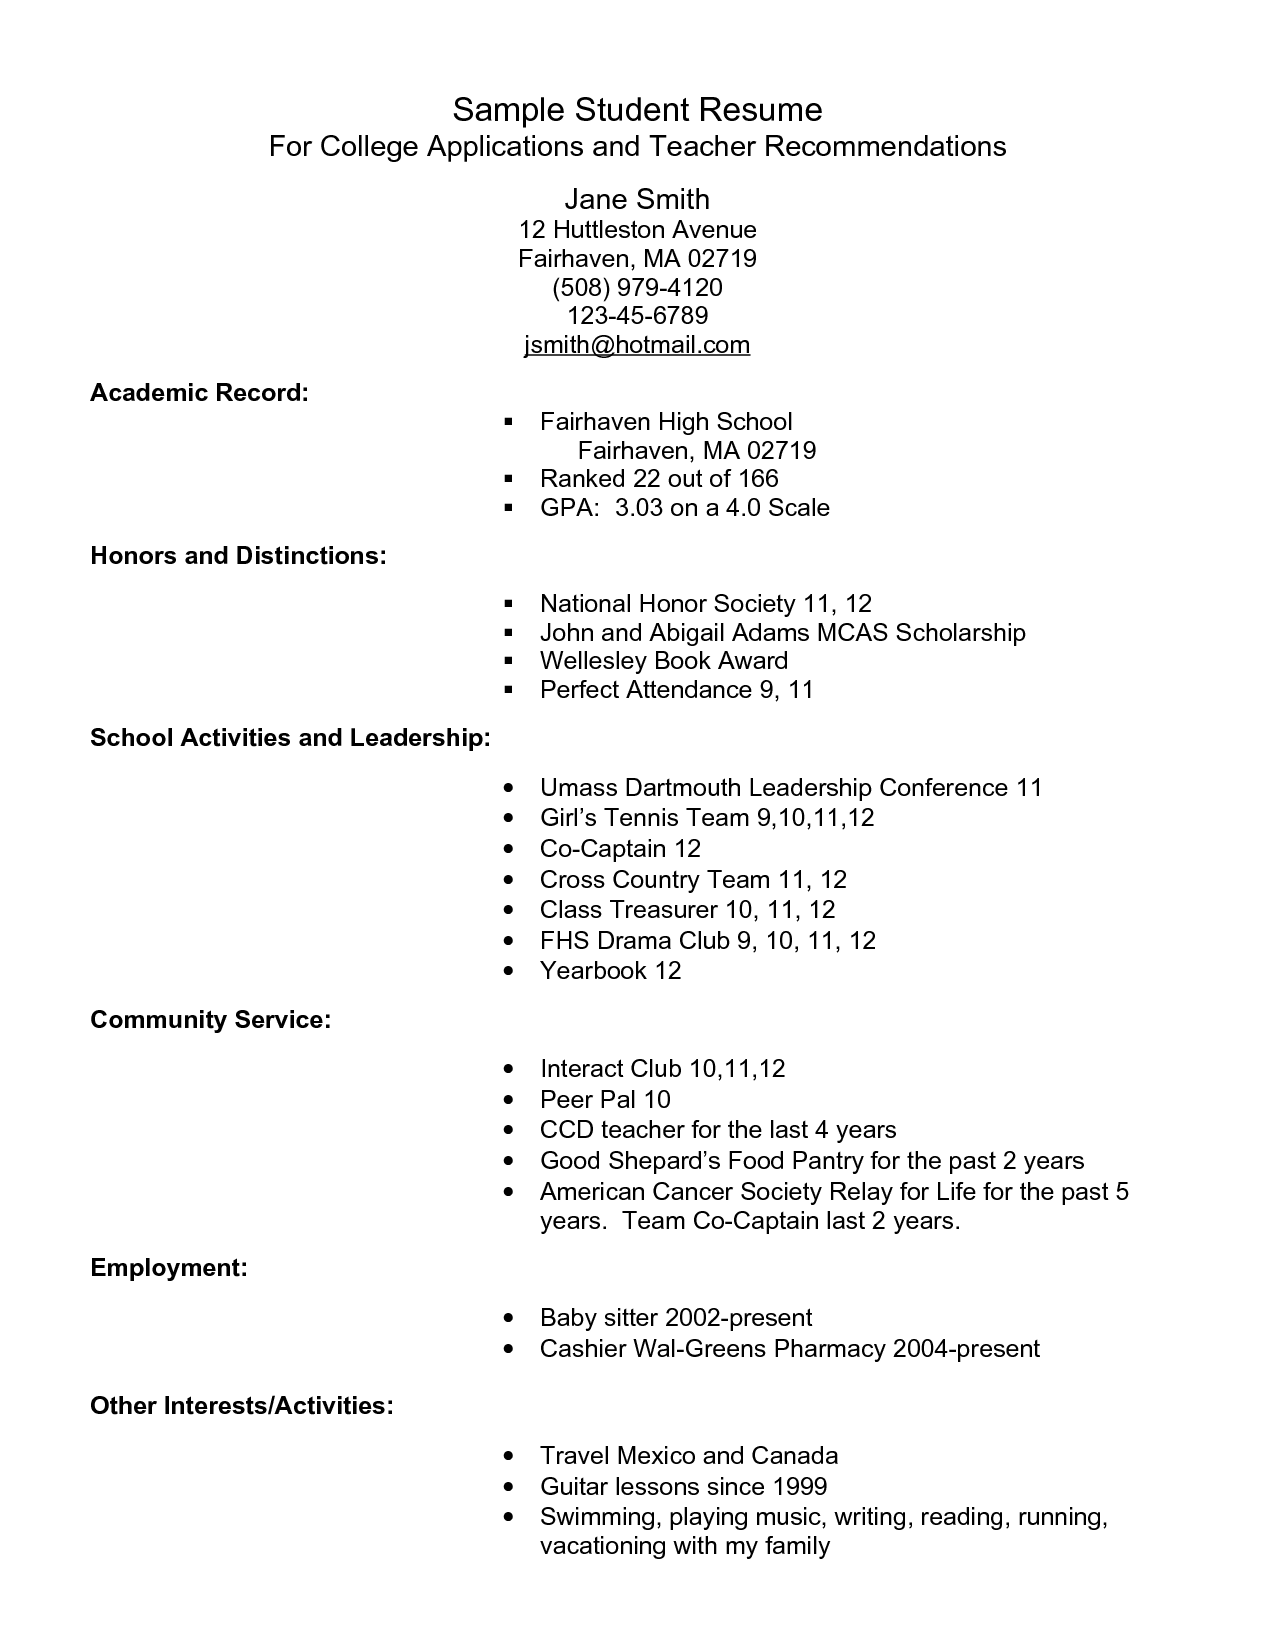 Sample High School Resumes Example Resume For High School Students For College